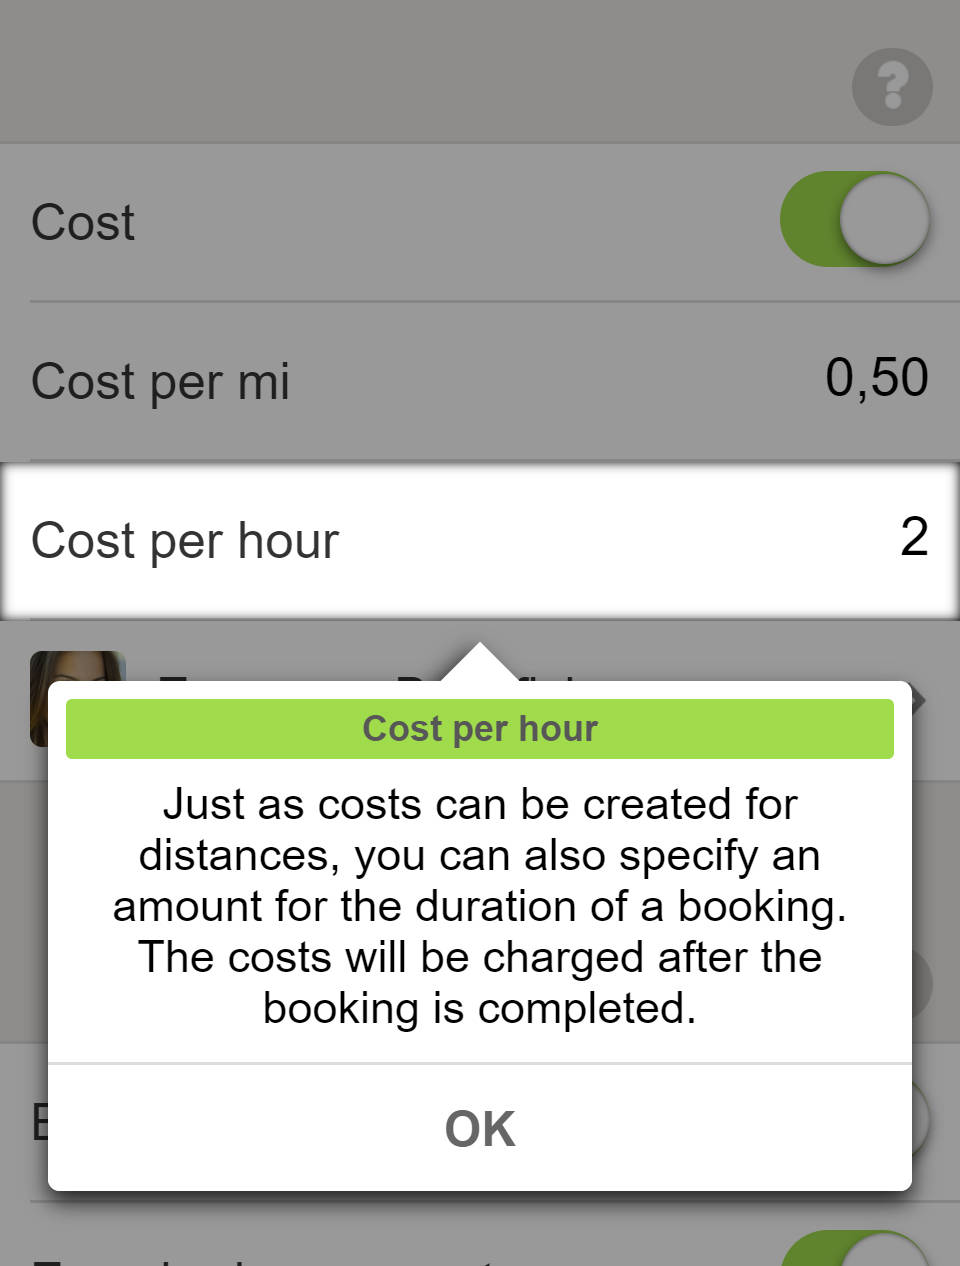 Bookings and Reservations - Costs for bookings